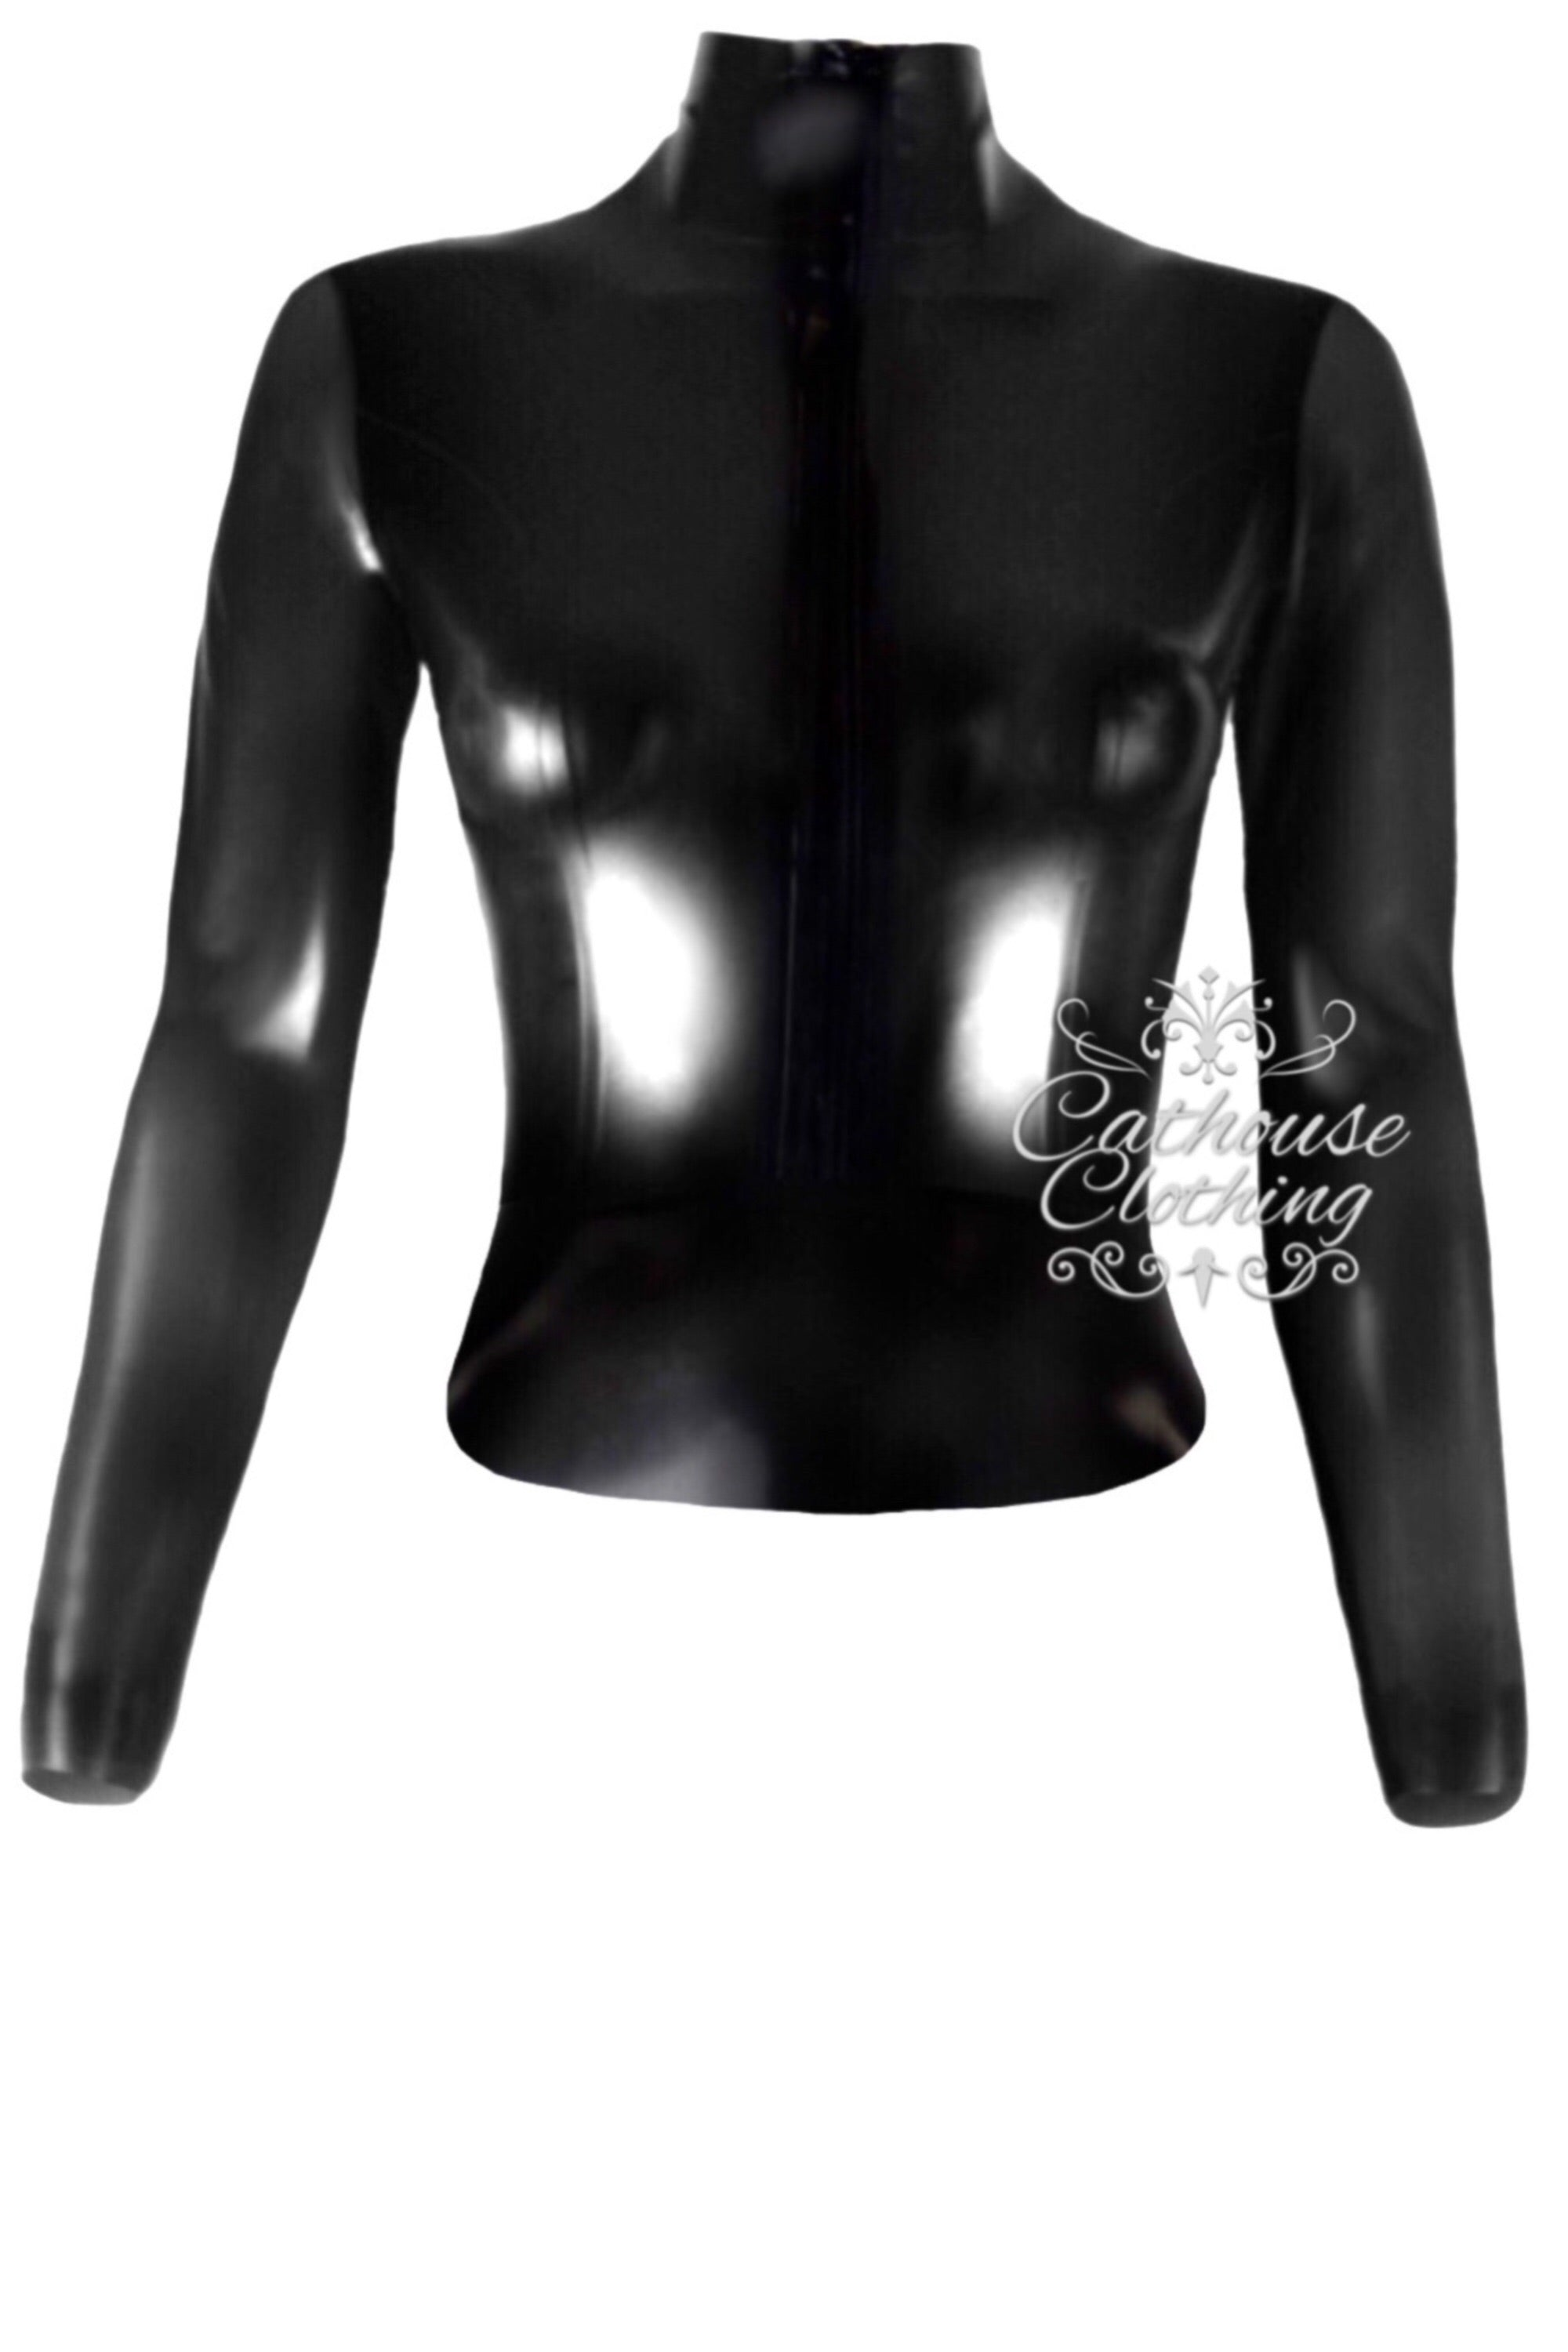 Latex Mistress top